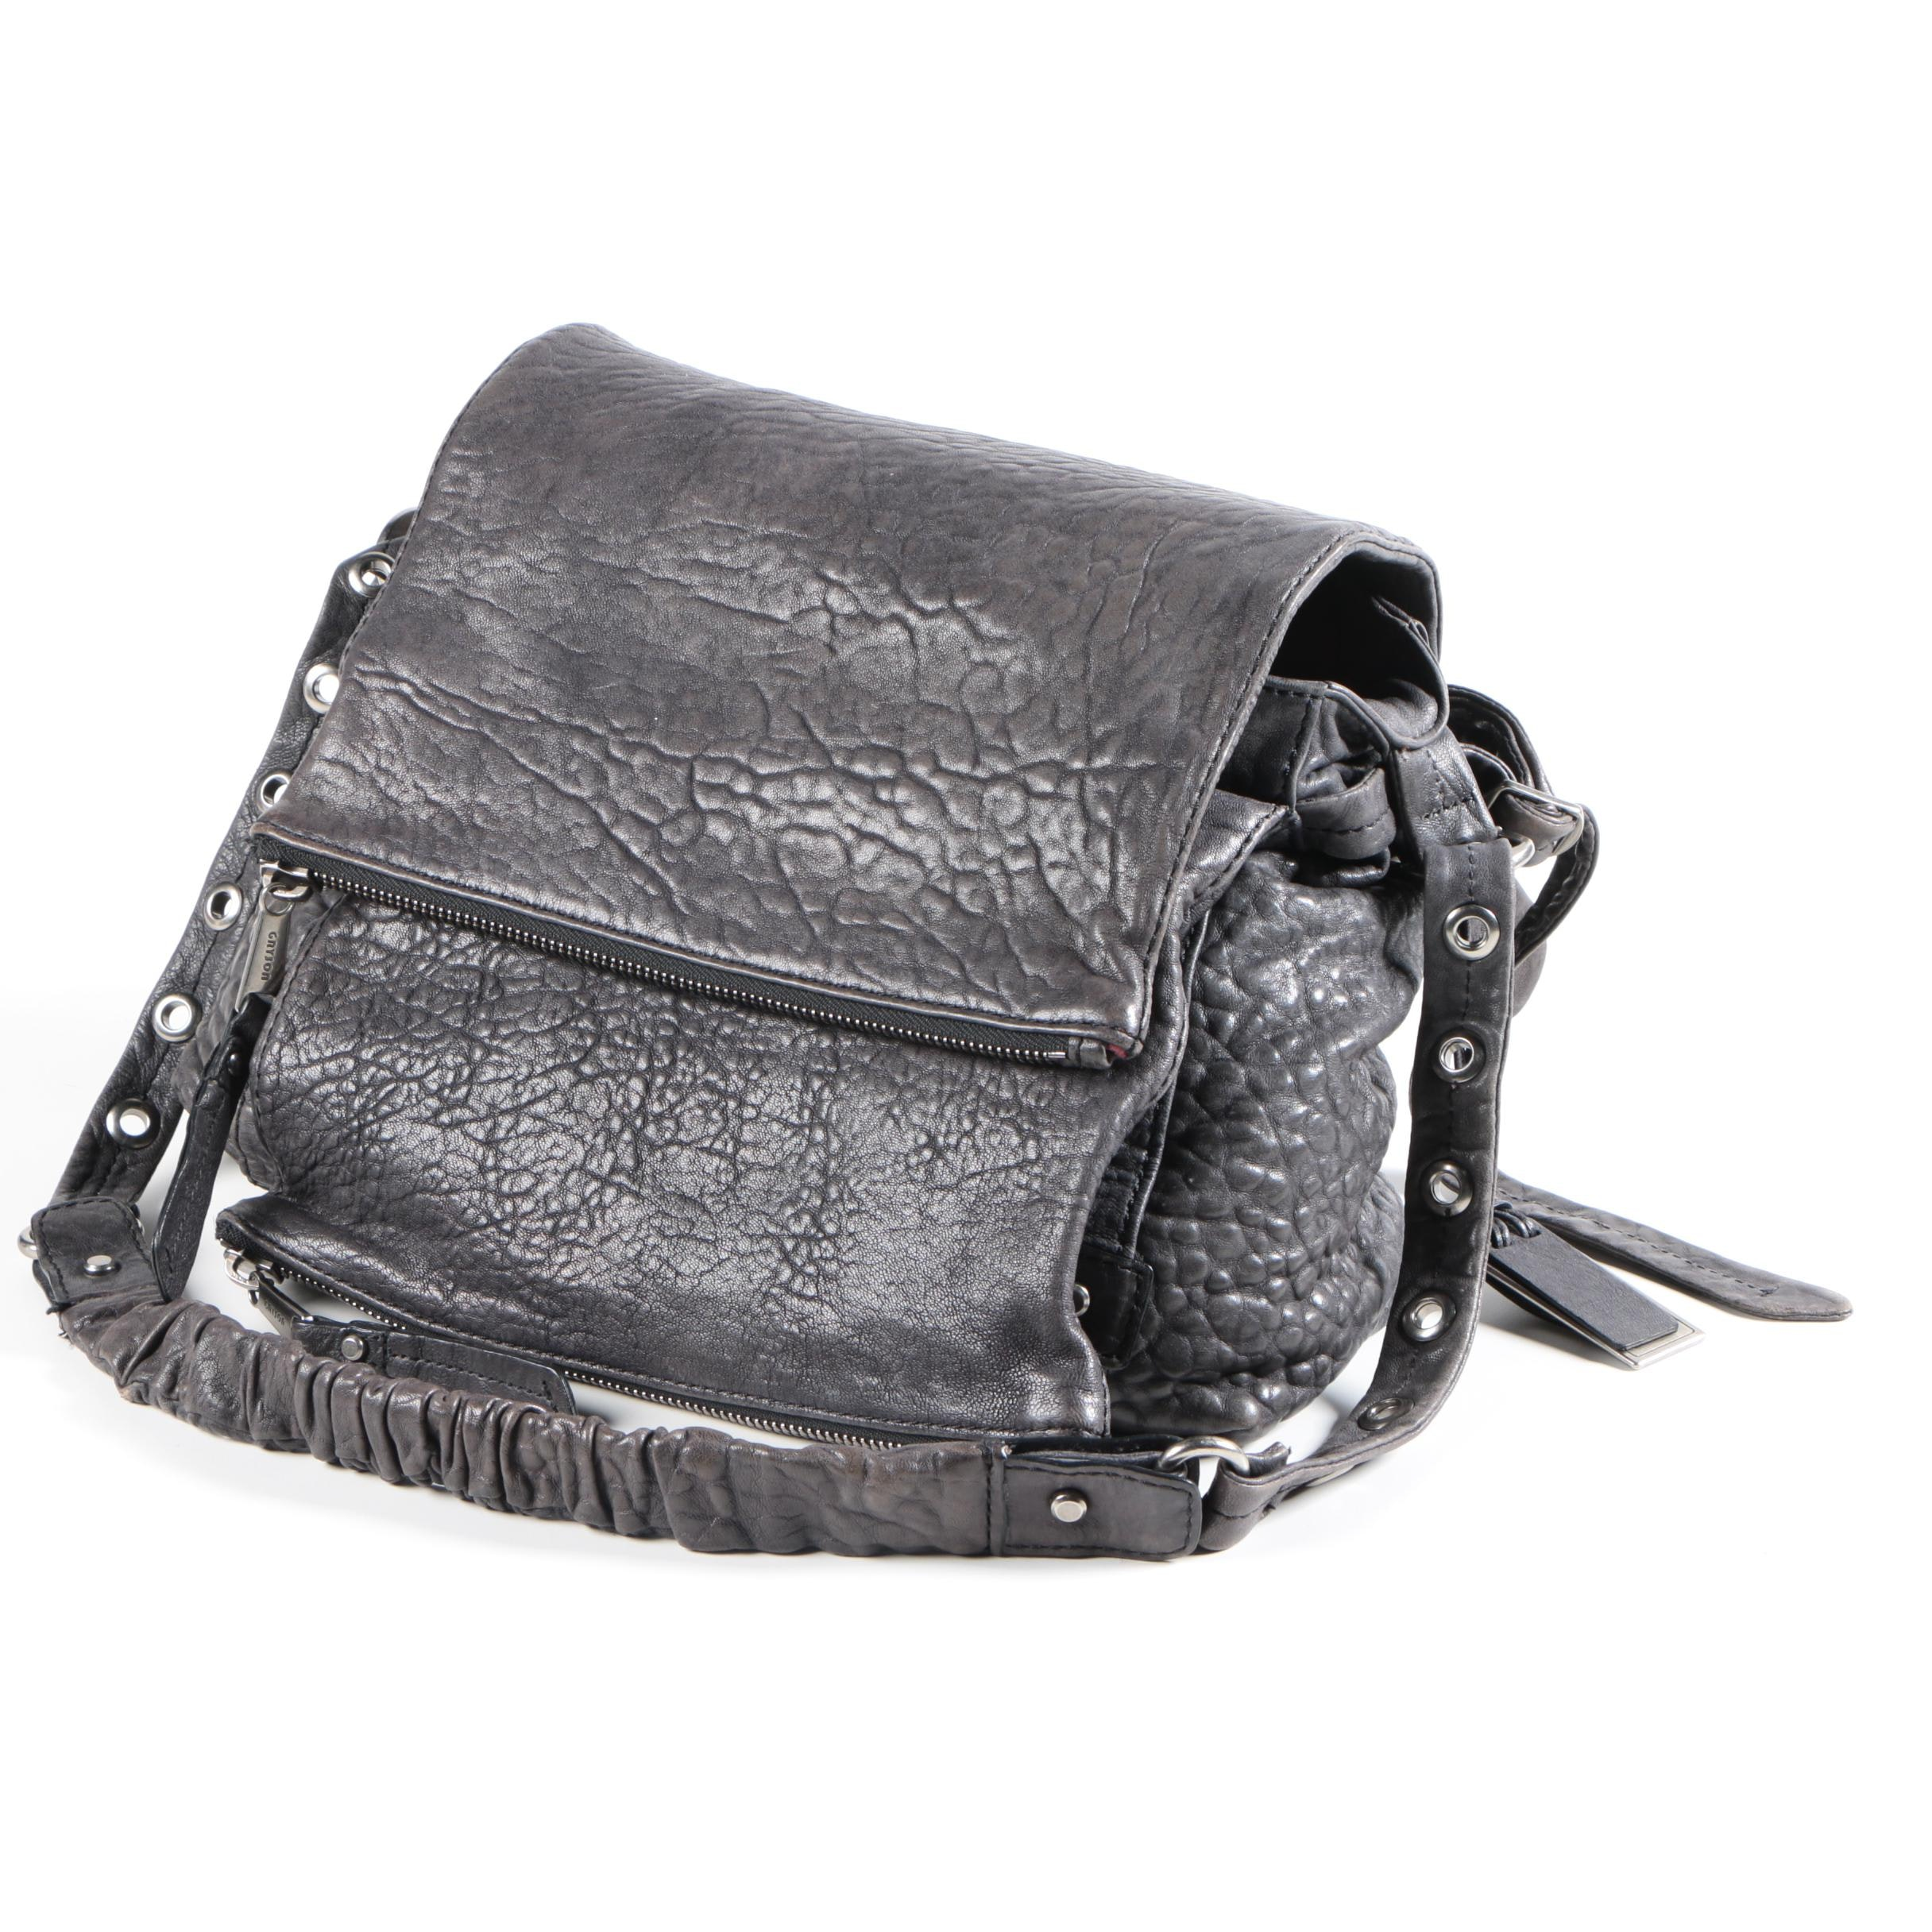 Gryson Black Leather Handbag